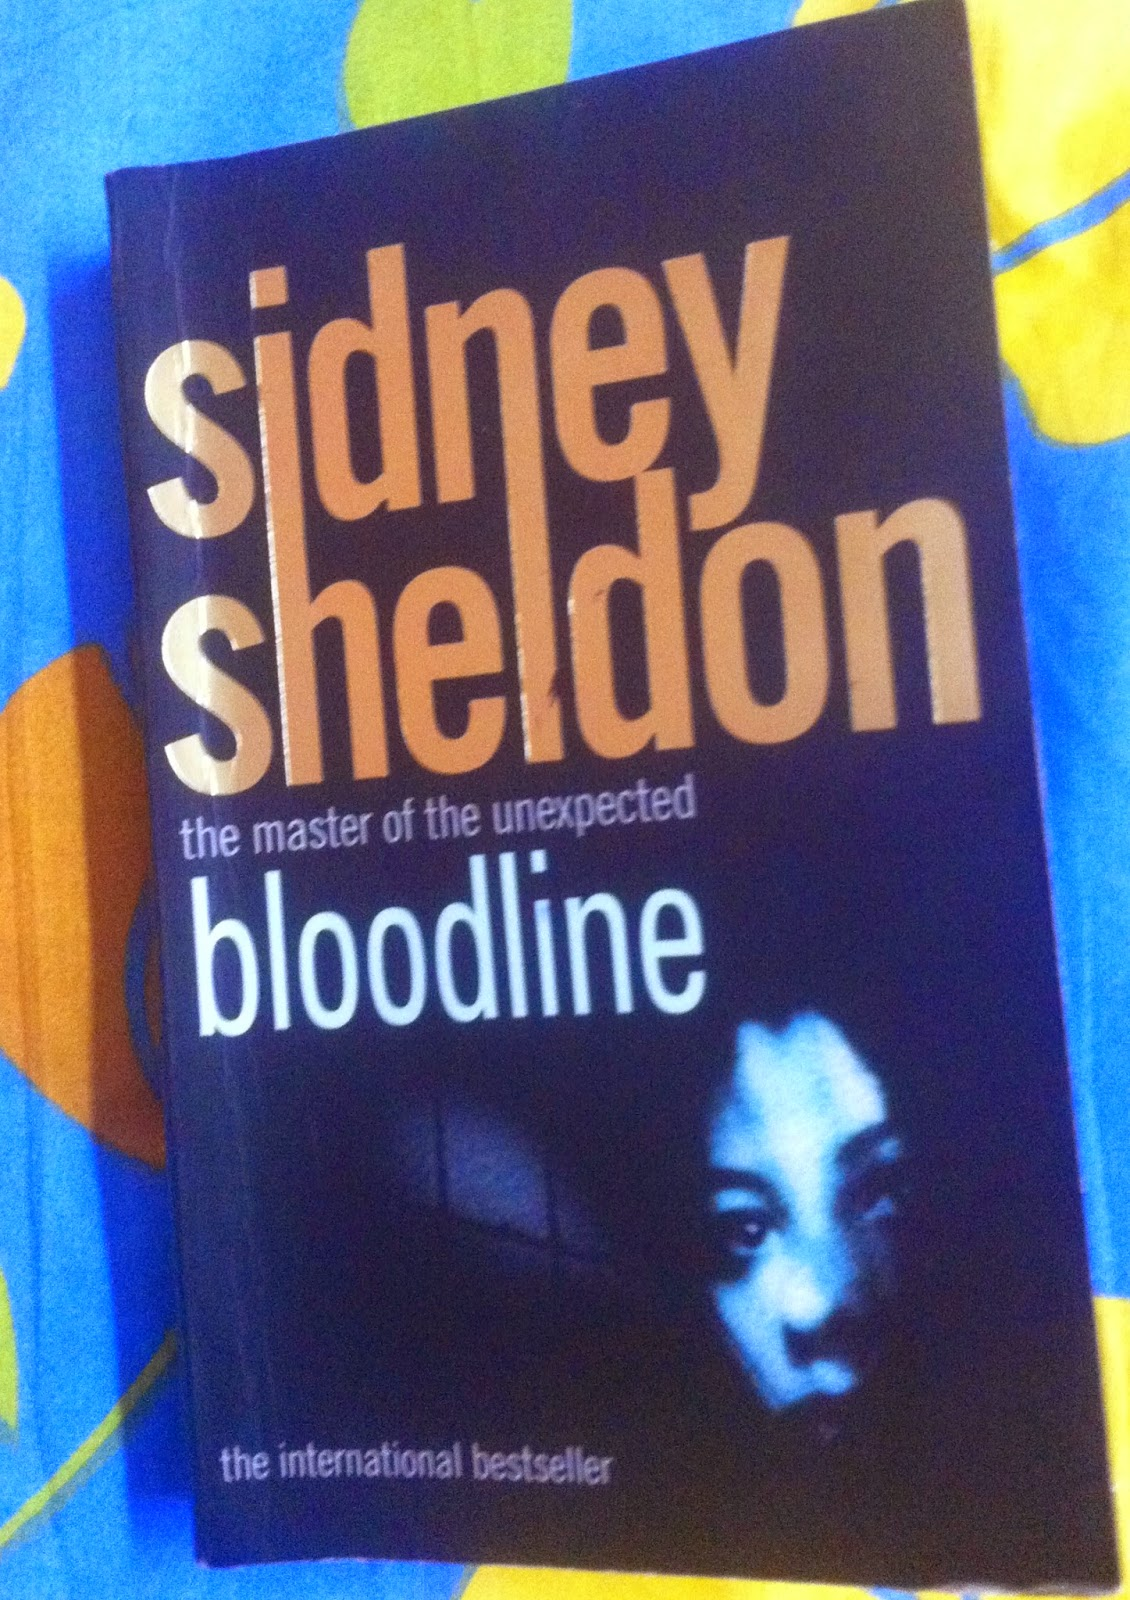 bloodline by sidney sheldon book review